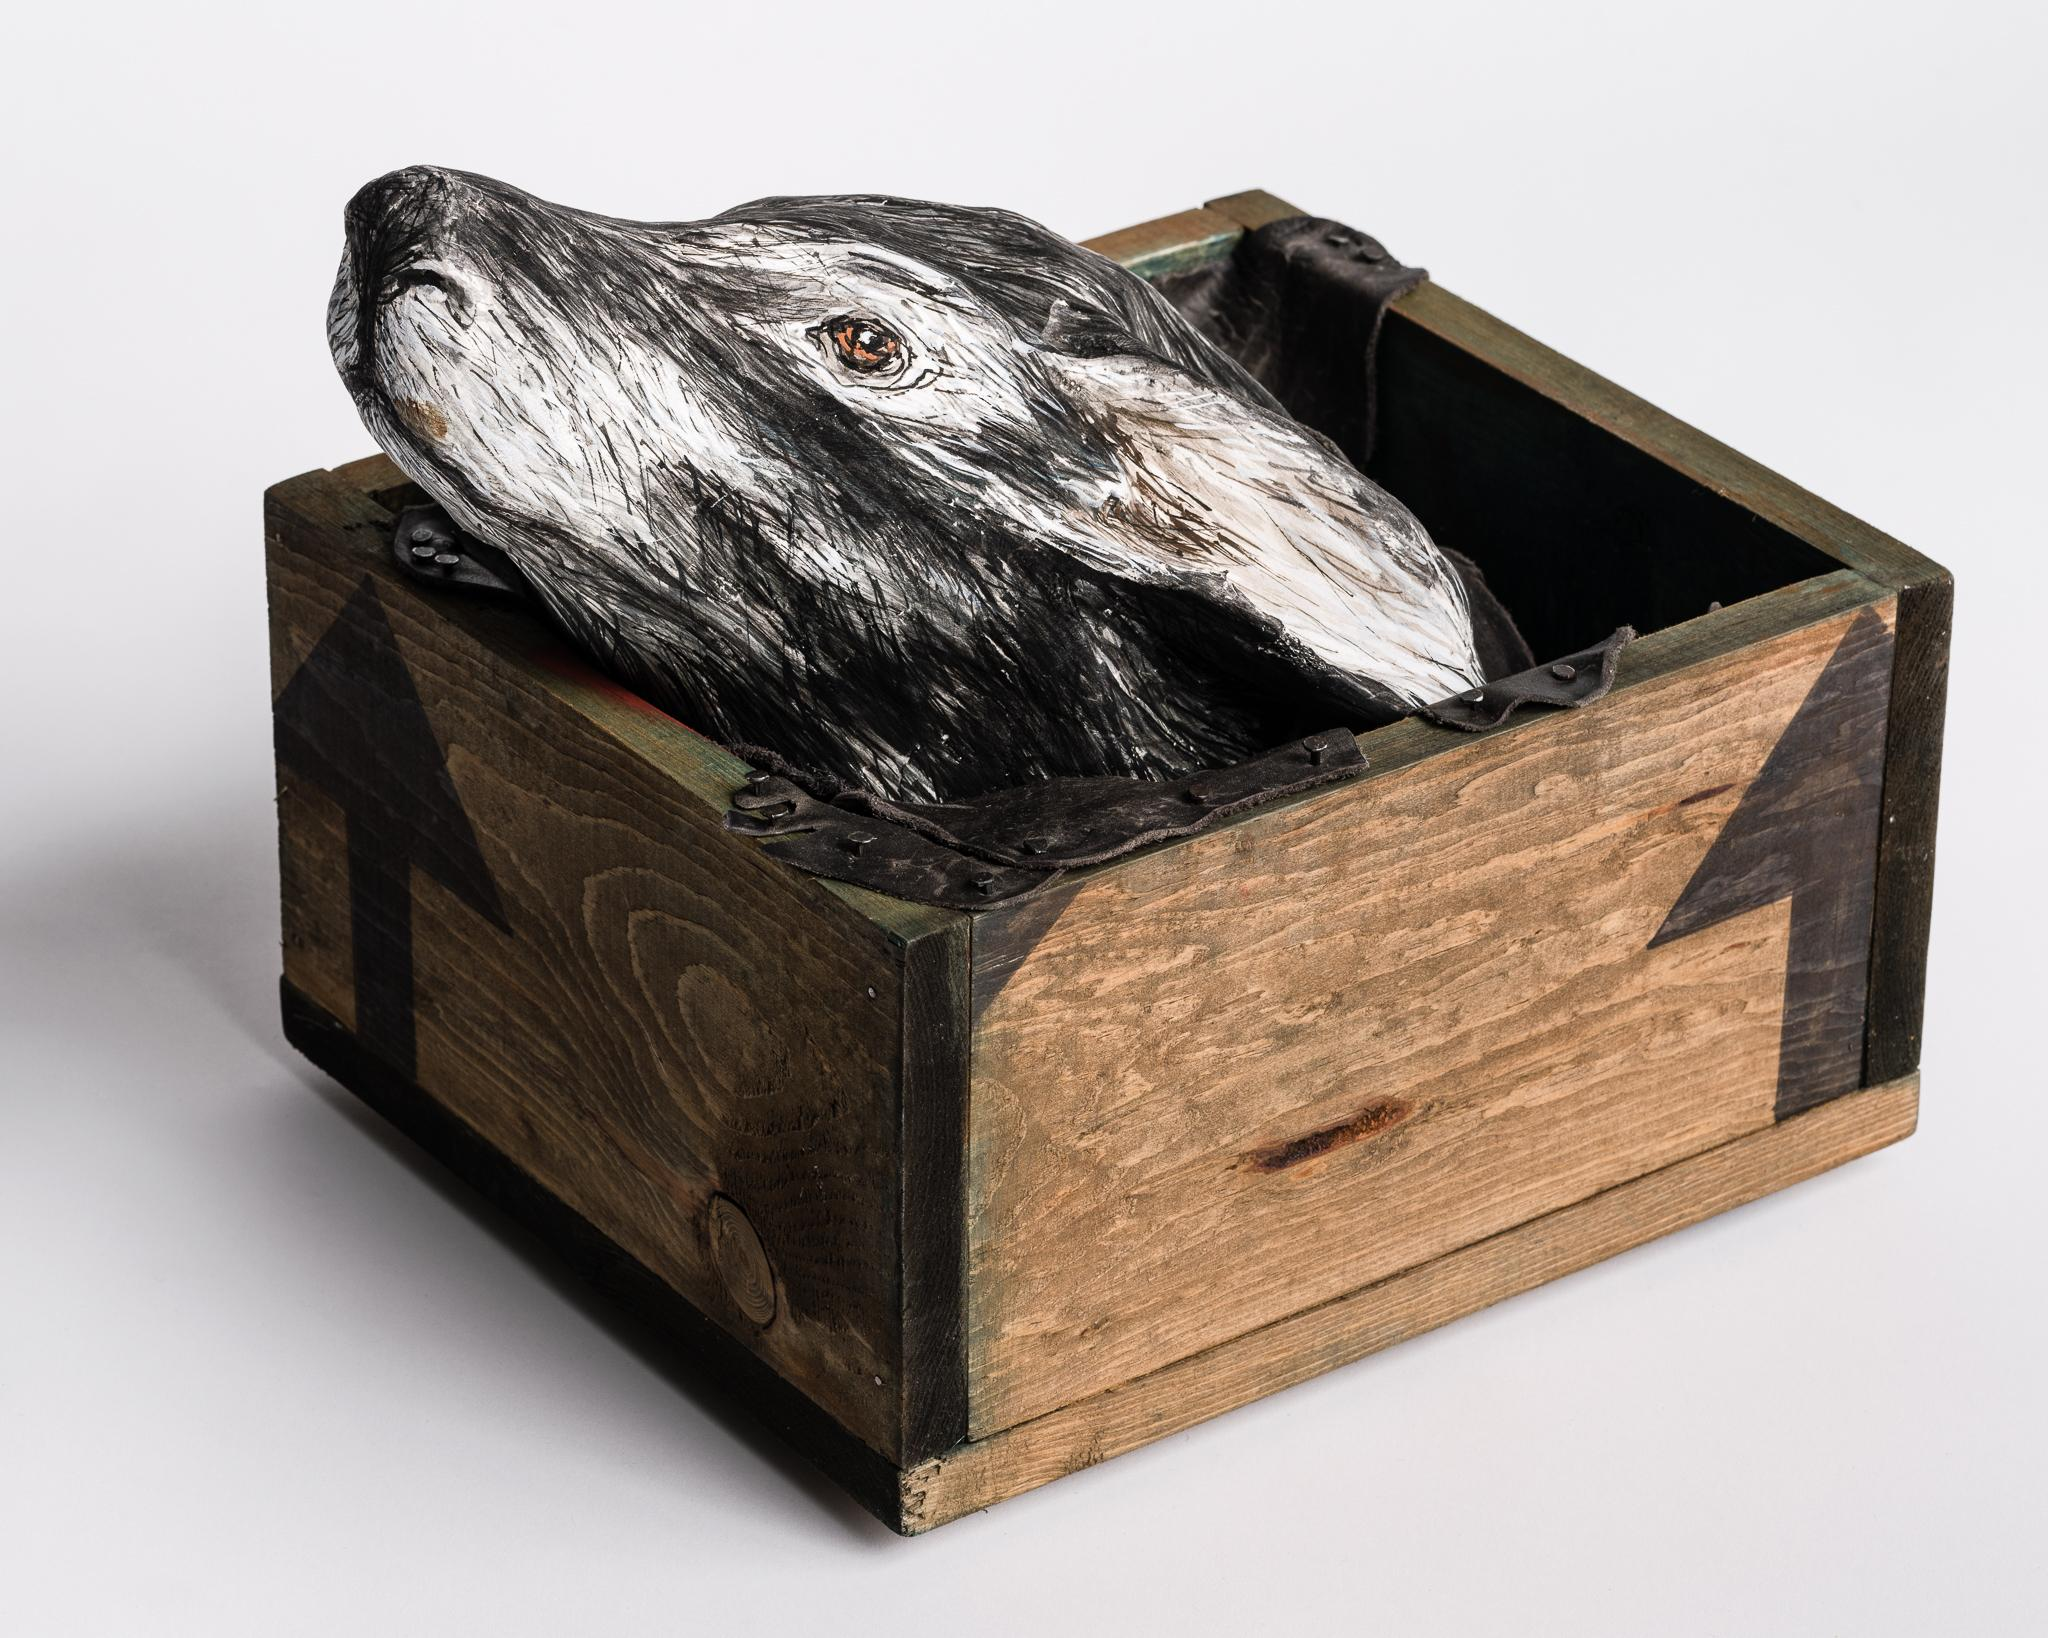 Sculpture of Deer head in wood box: 'Free me from the earth'